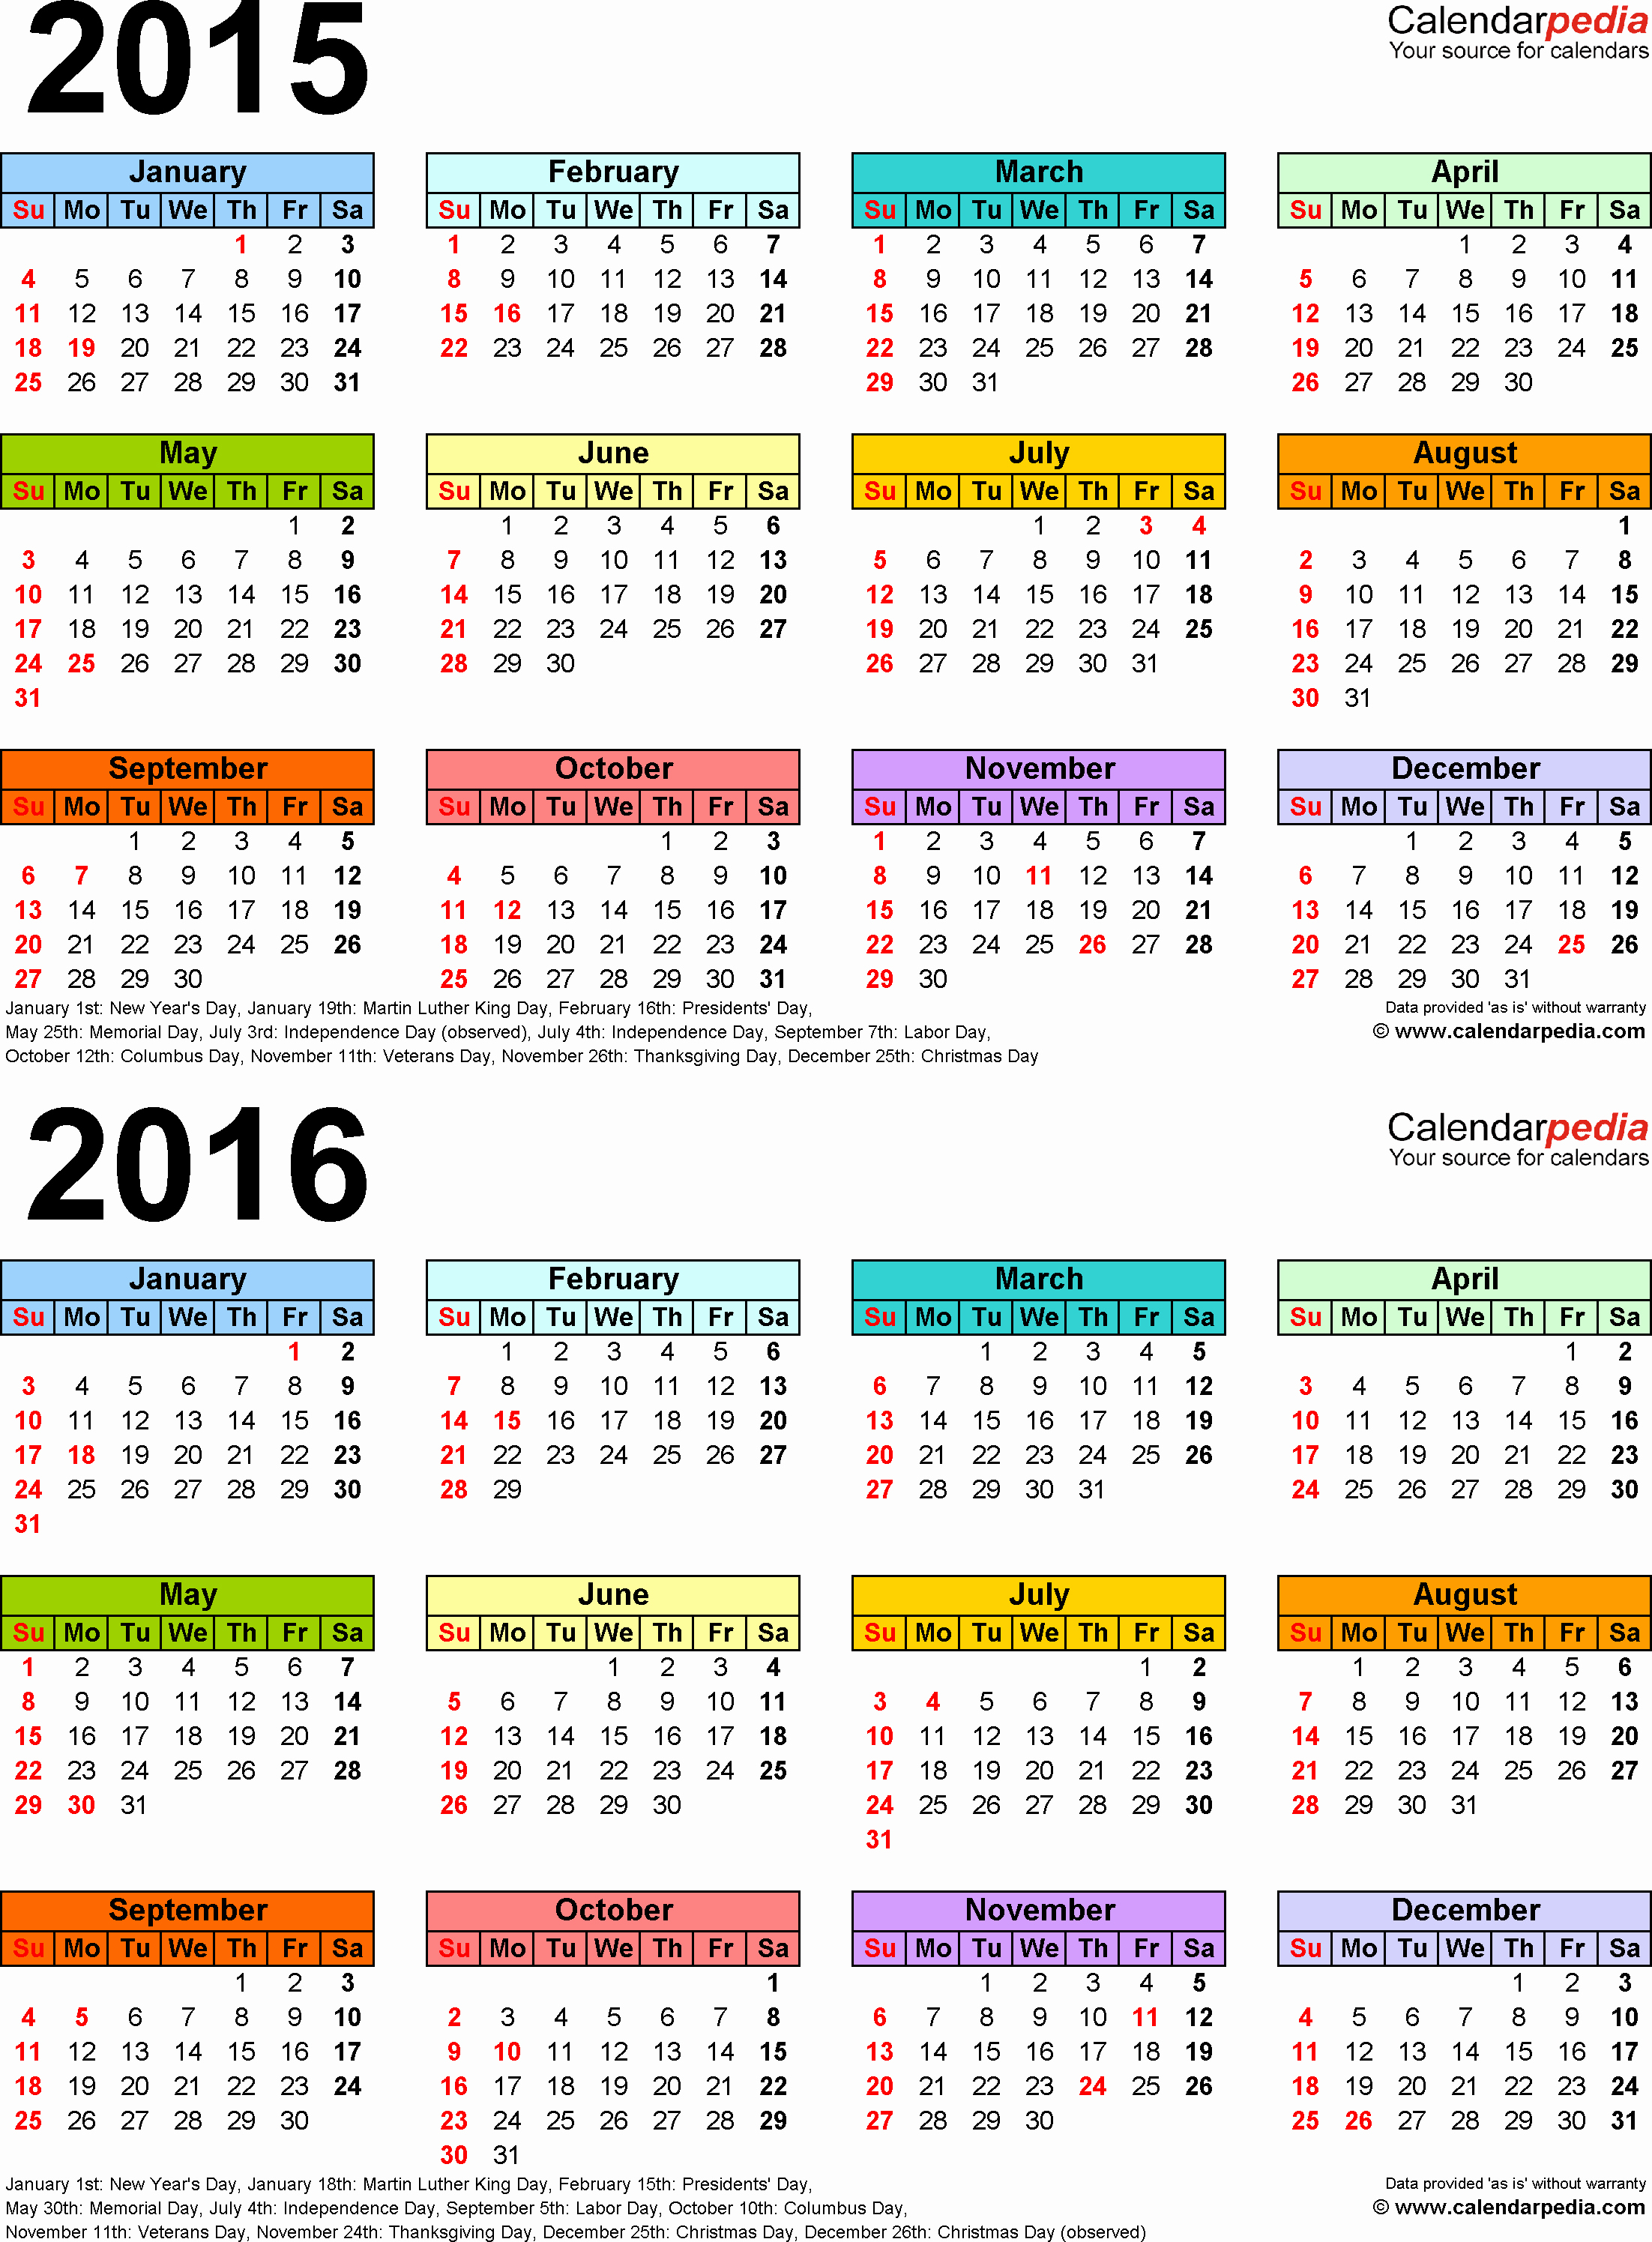 Monthly Calendar 2016-17 Inspirational 2015 2016 Calendar Free Printable Two Year Word Calendars